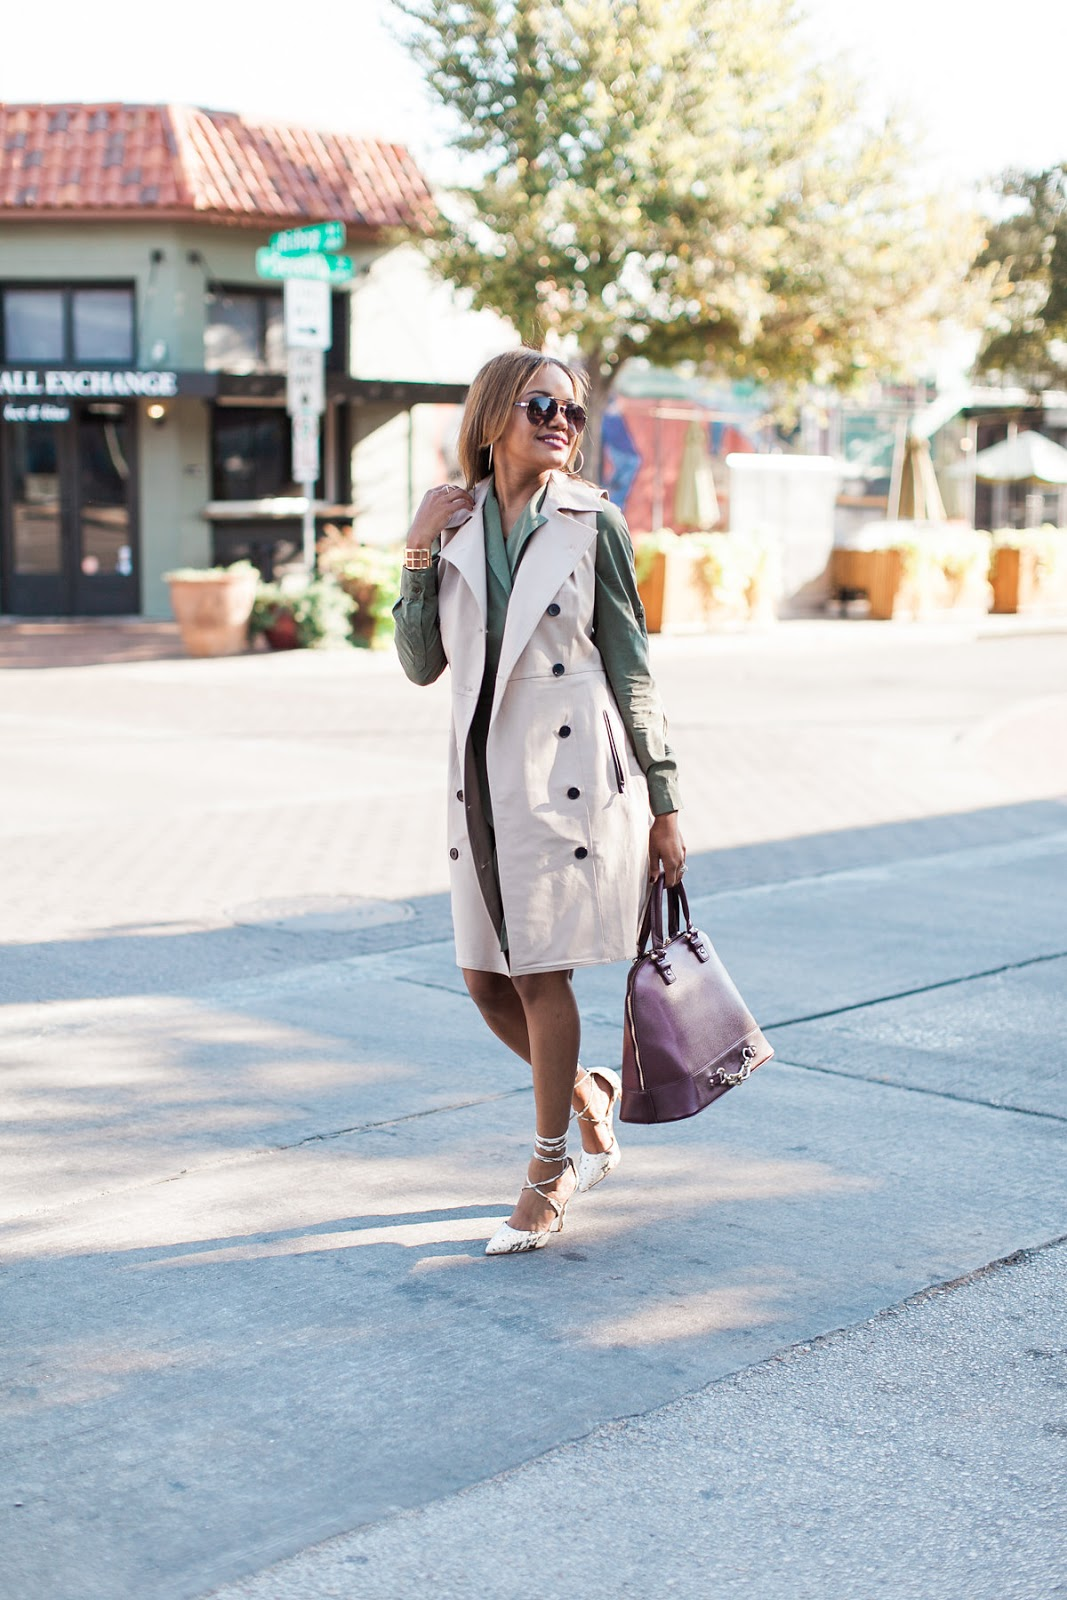 Banana Republic olive trench dress, olive, fall fashion, how to layer, ann taylor, trench dress, steve madden raela pump, justfab, dallas fashion blogger, fashion blogger, detroit fashion blogger, black fashion blogger, steve madden